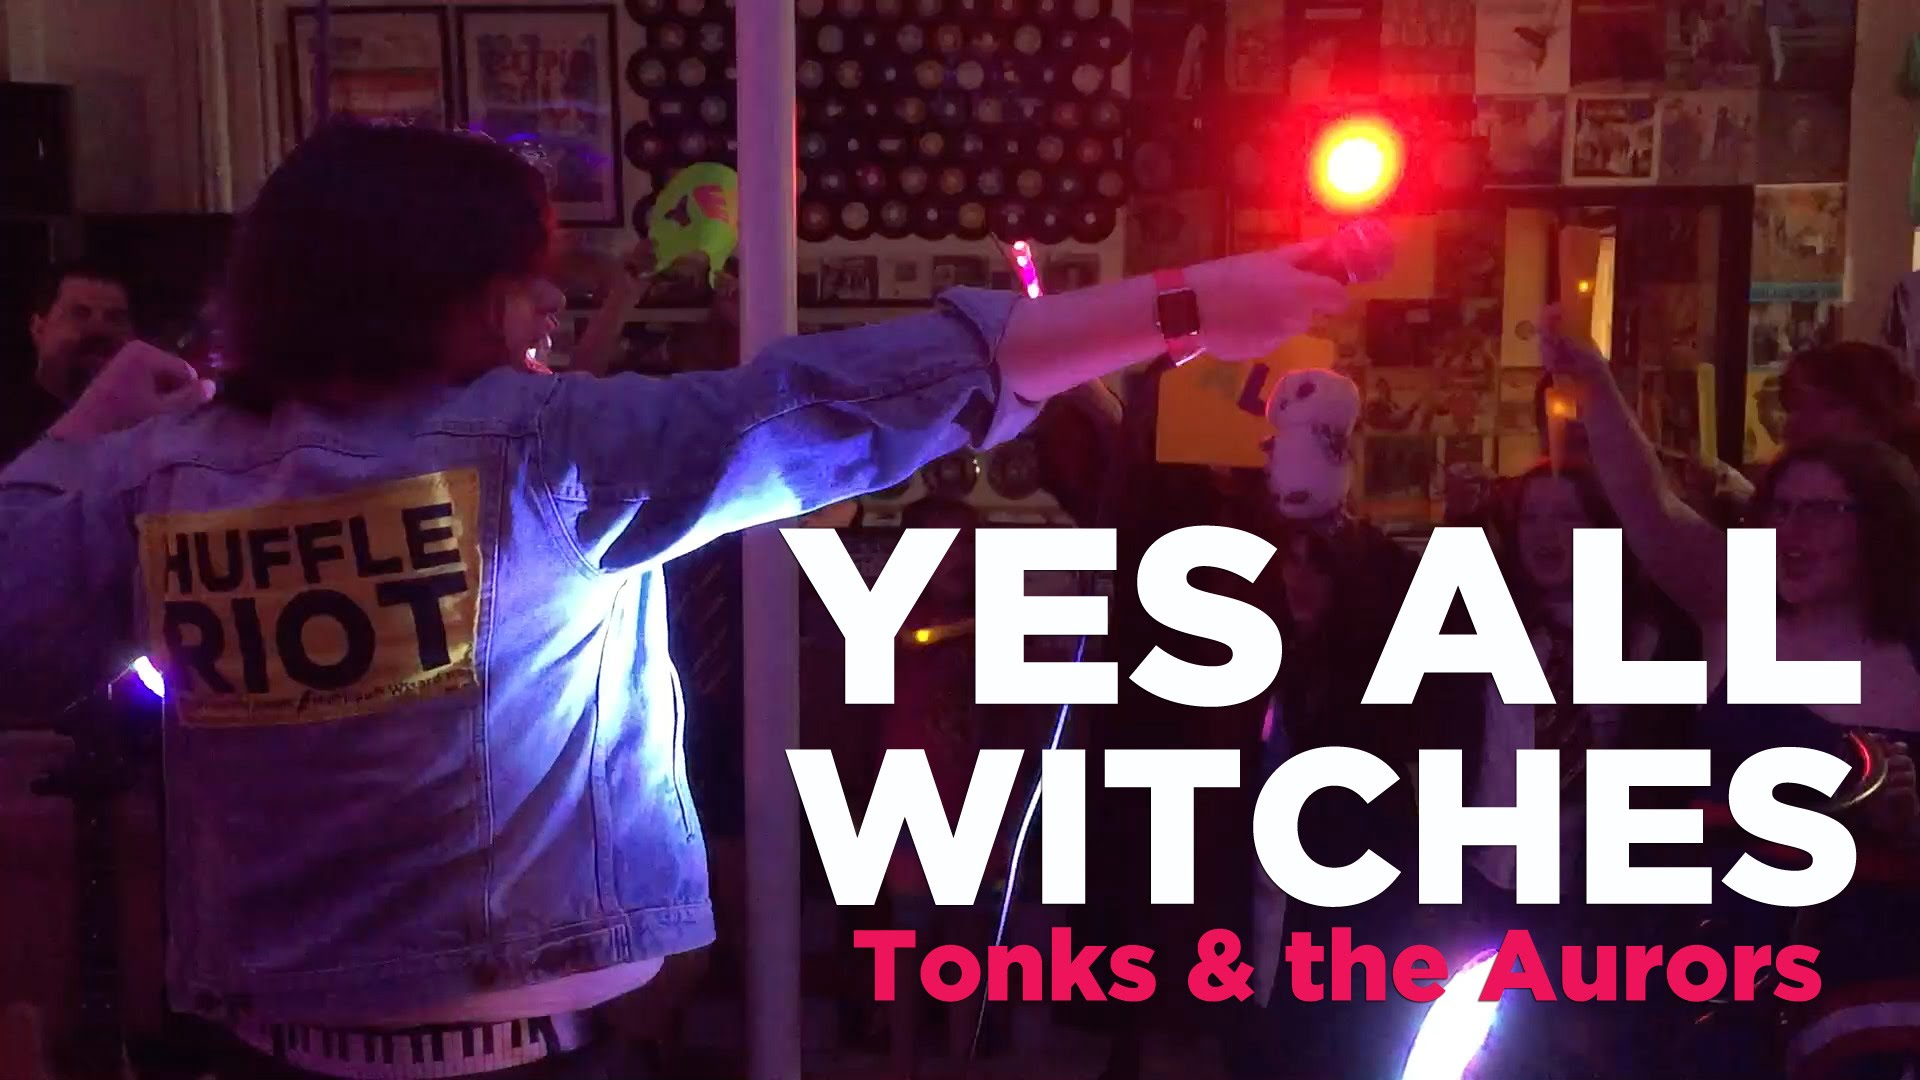 tonks-and-the-aurors-yes-all-witches